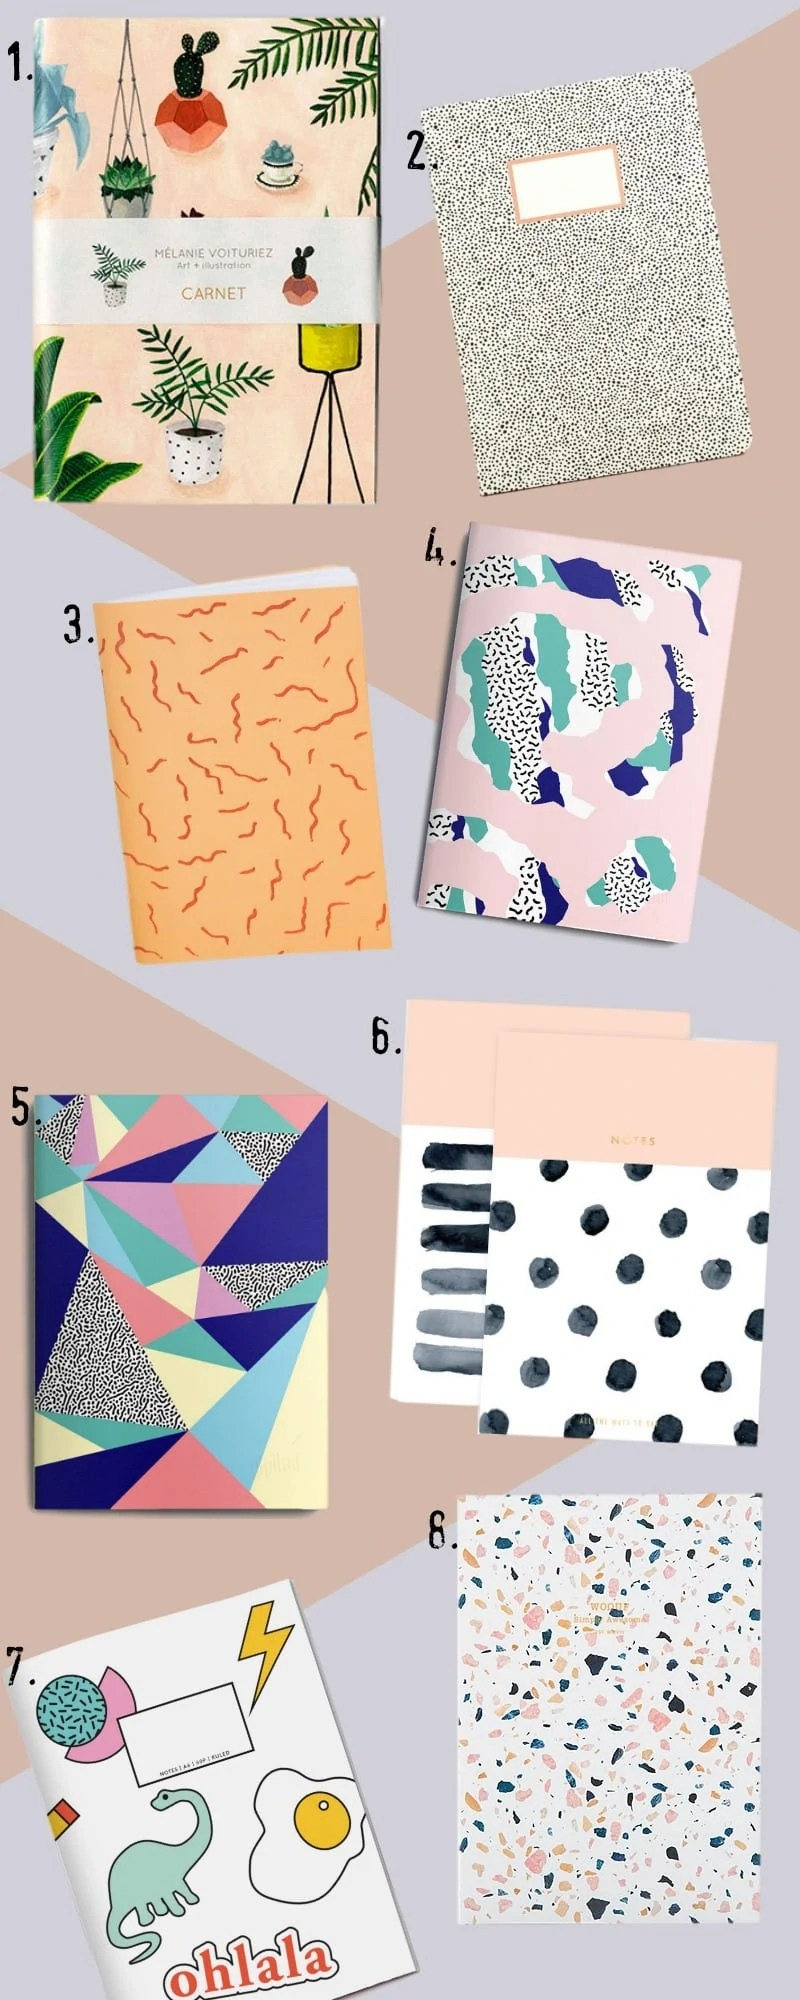 8 Amazing Notebooks